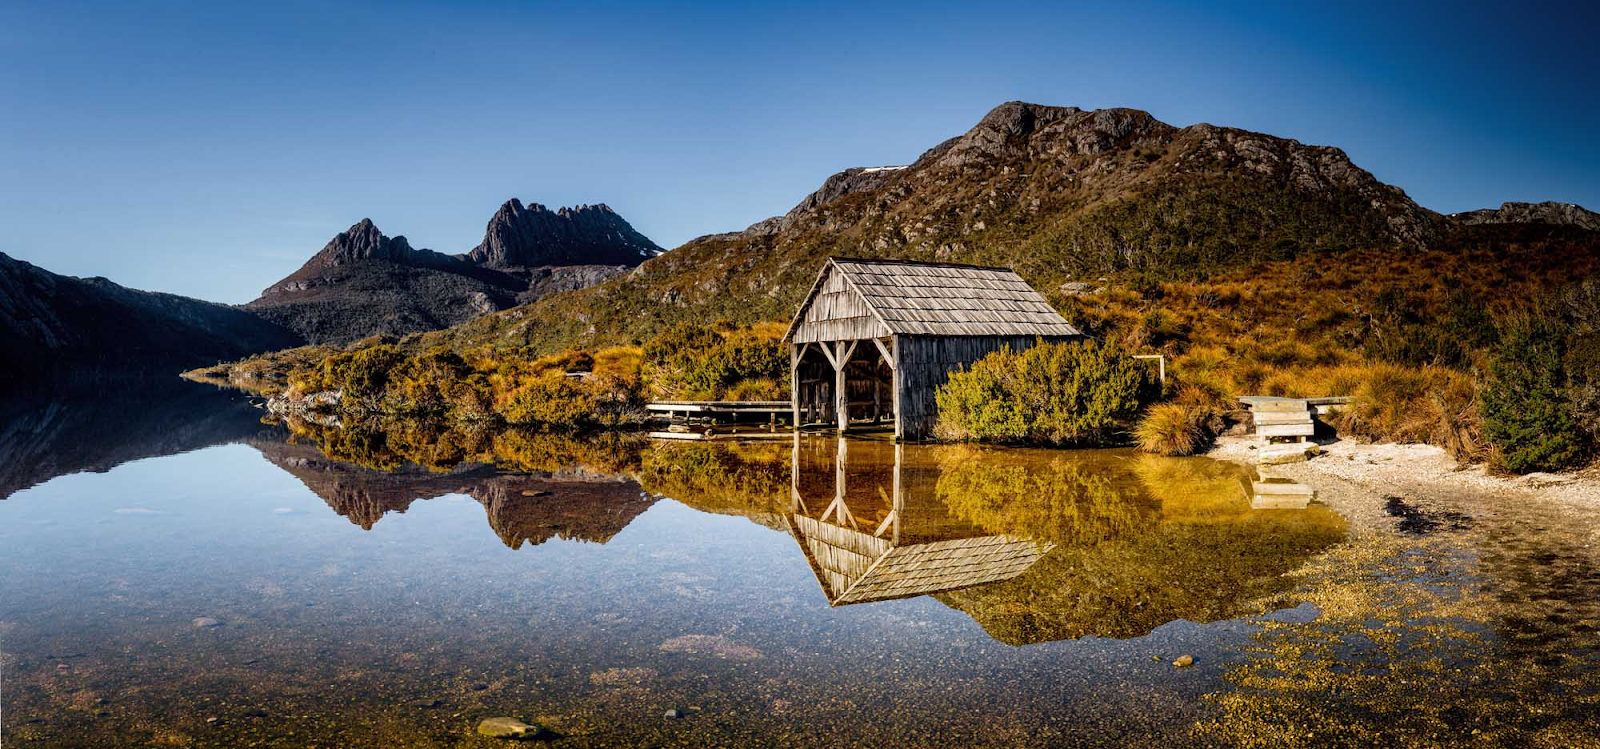 Dove Lake Circuit - Lake St. Clair National Park, Tasmania